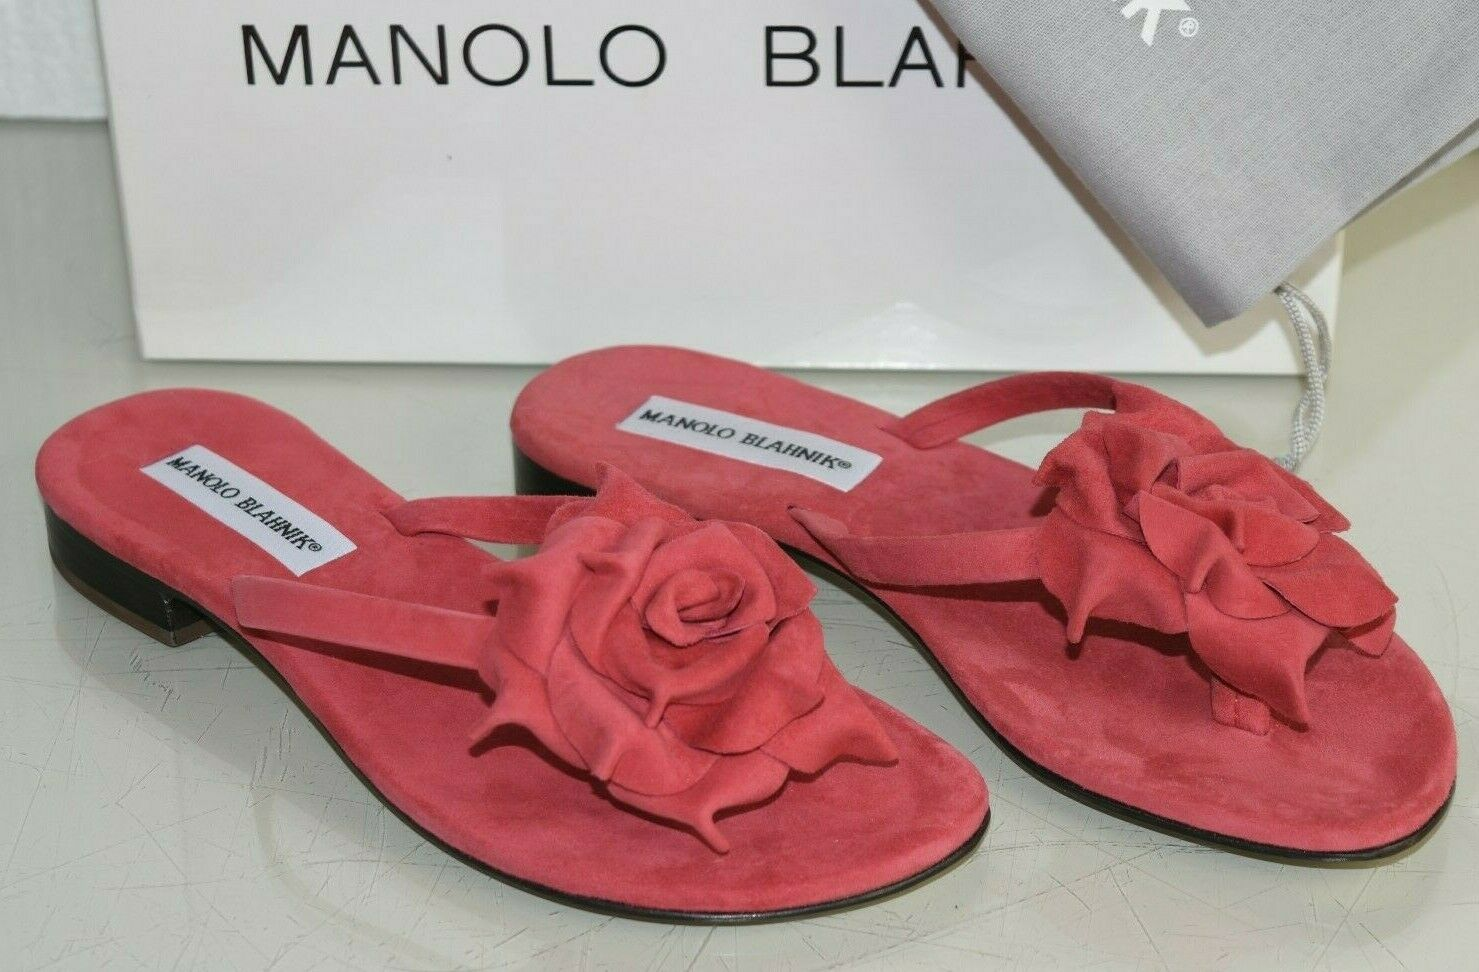 735 New Manolo Blahnik Patricia Thong Flat Sandals Coral Red Suede shoes 36